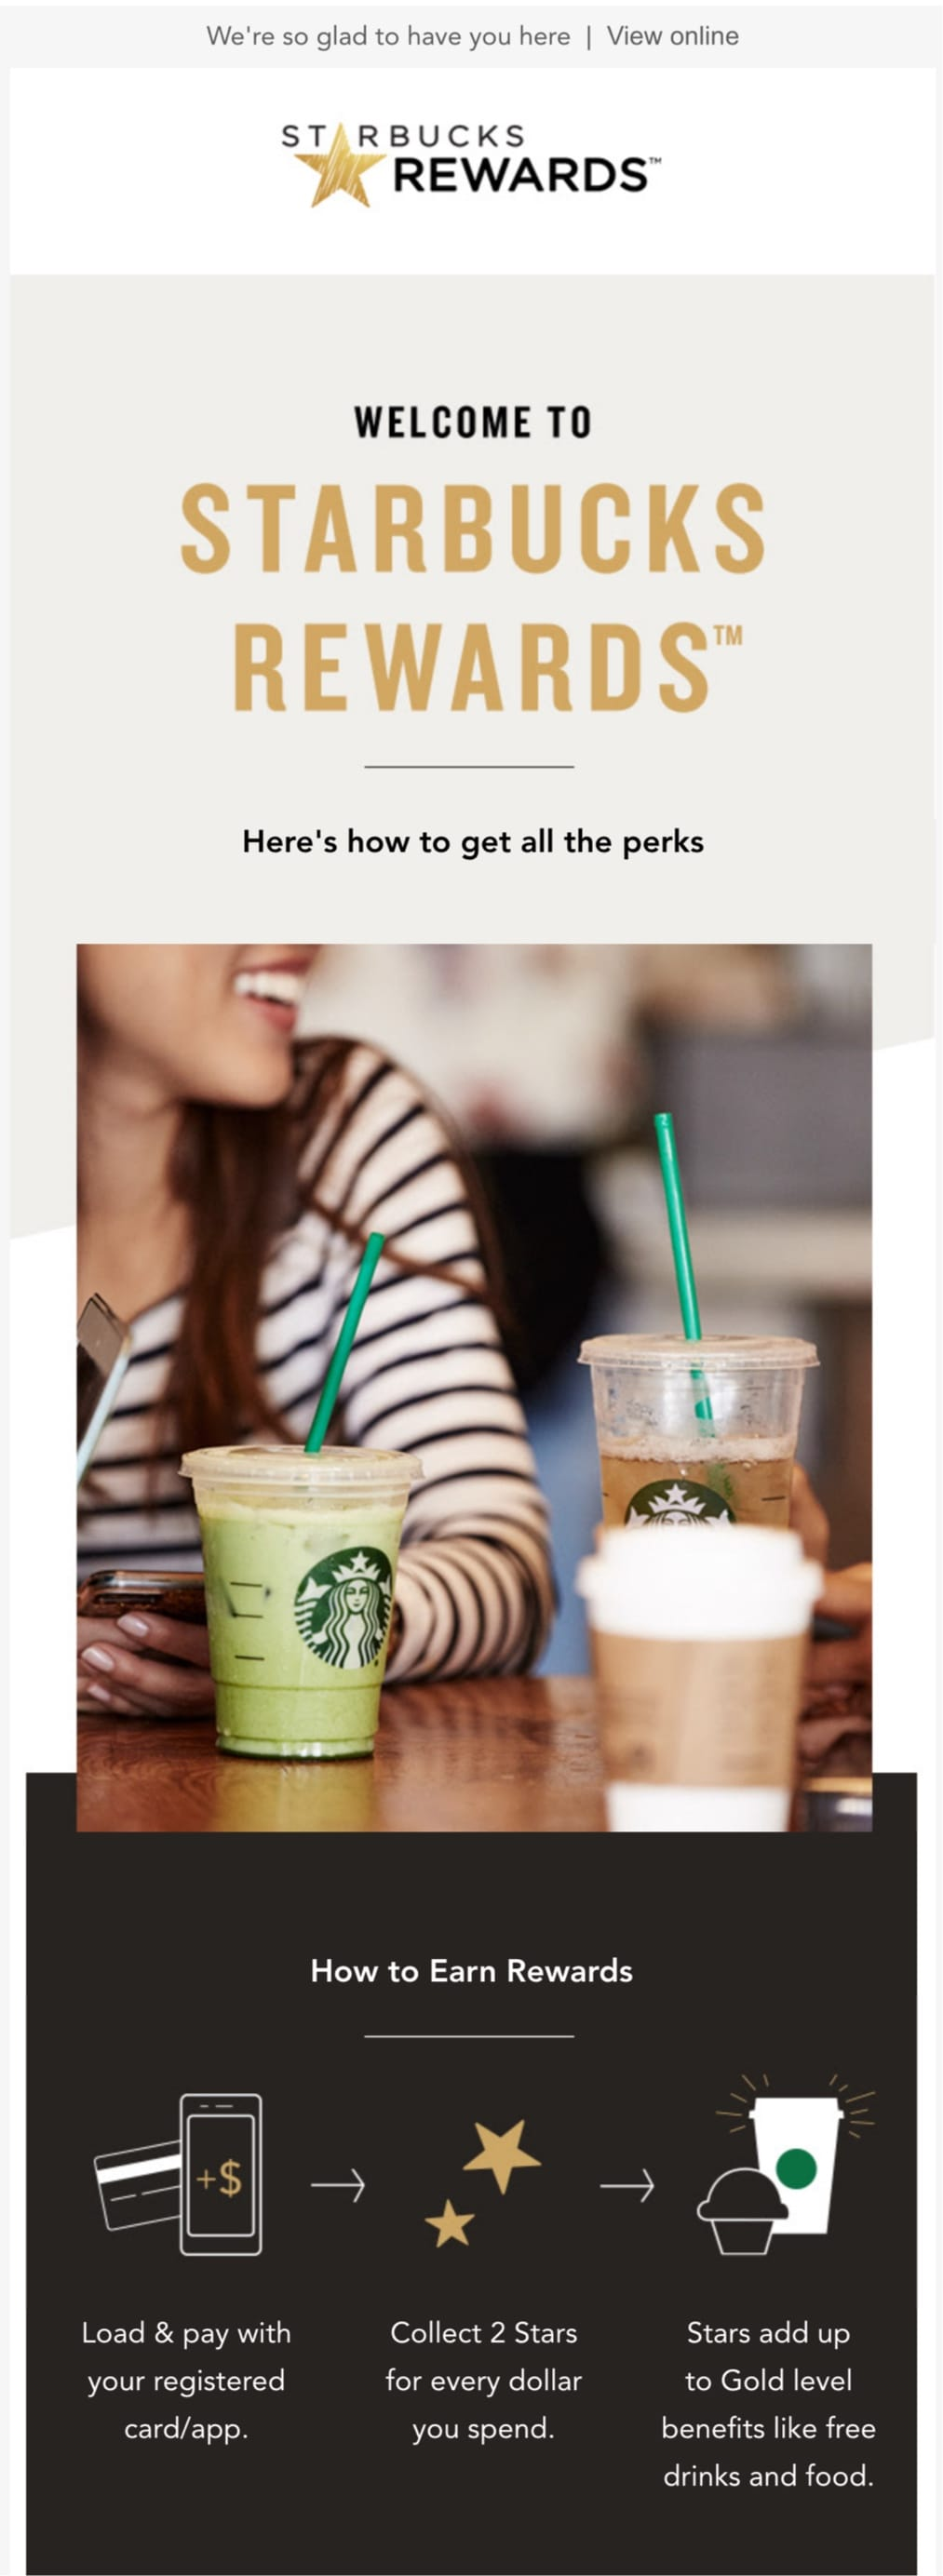 email example starbucks